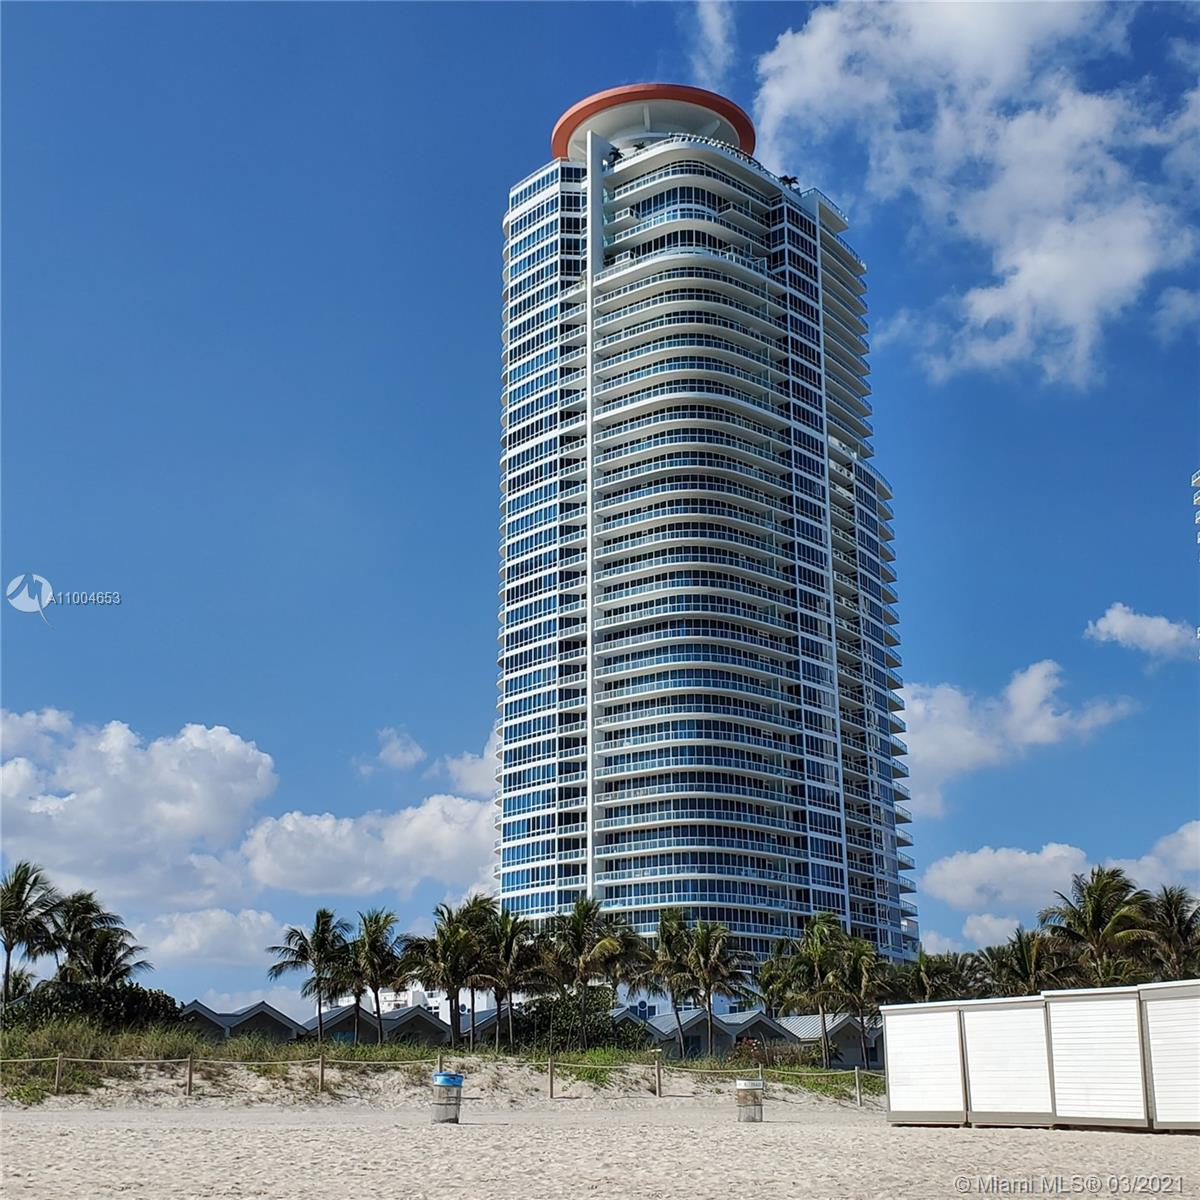 Continuum South #3502/3503/3504/3505 - 100 S Pointe Dr #3502/3503/3504/3505, Miami Beach, FL 33139